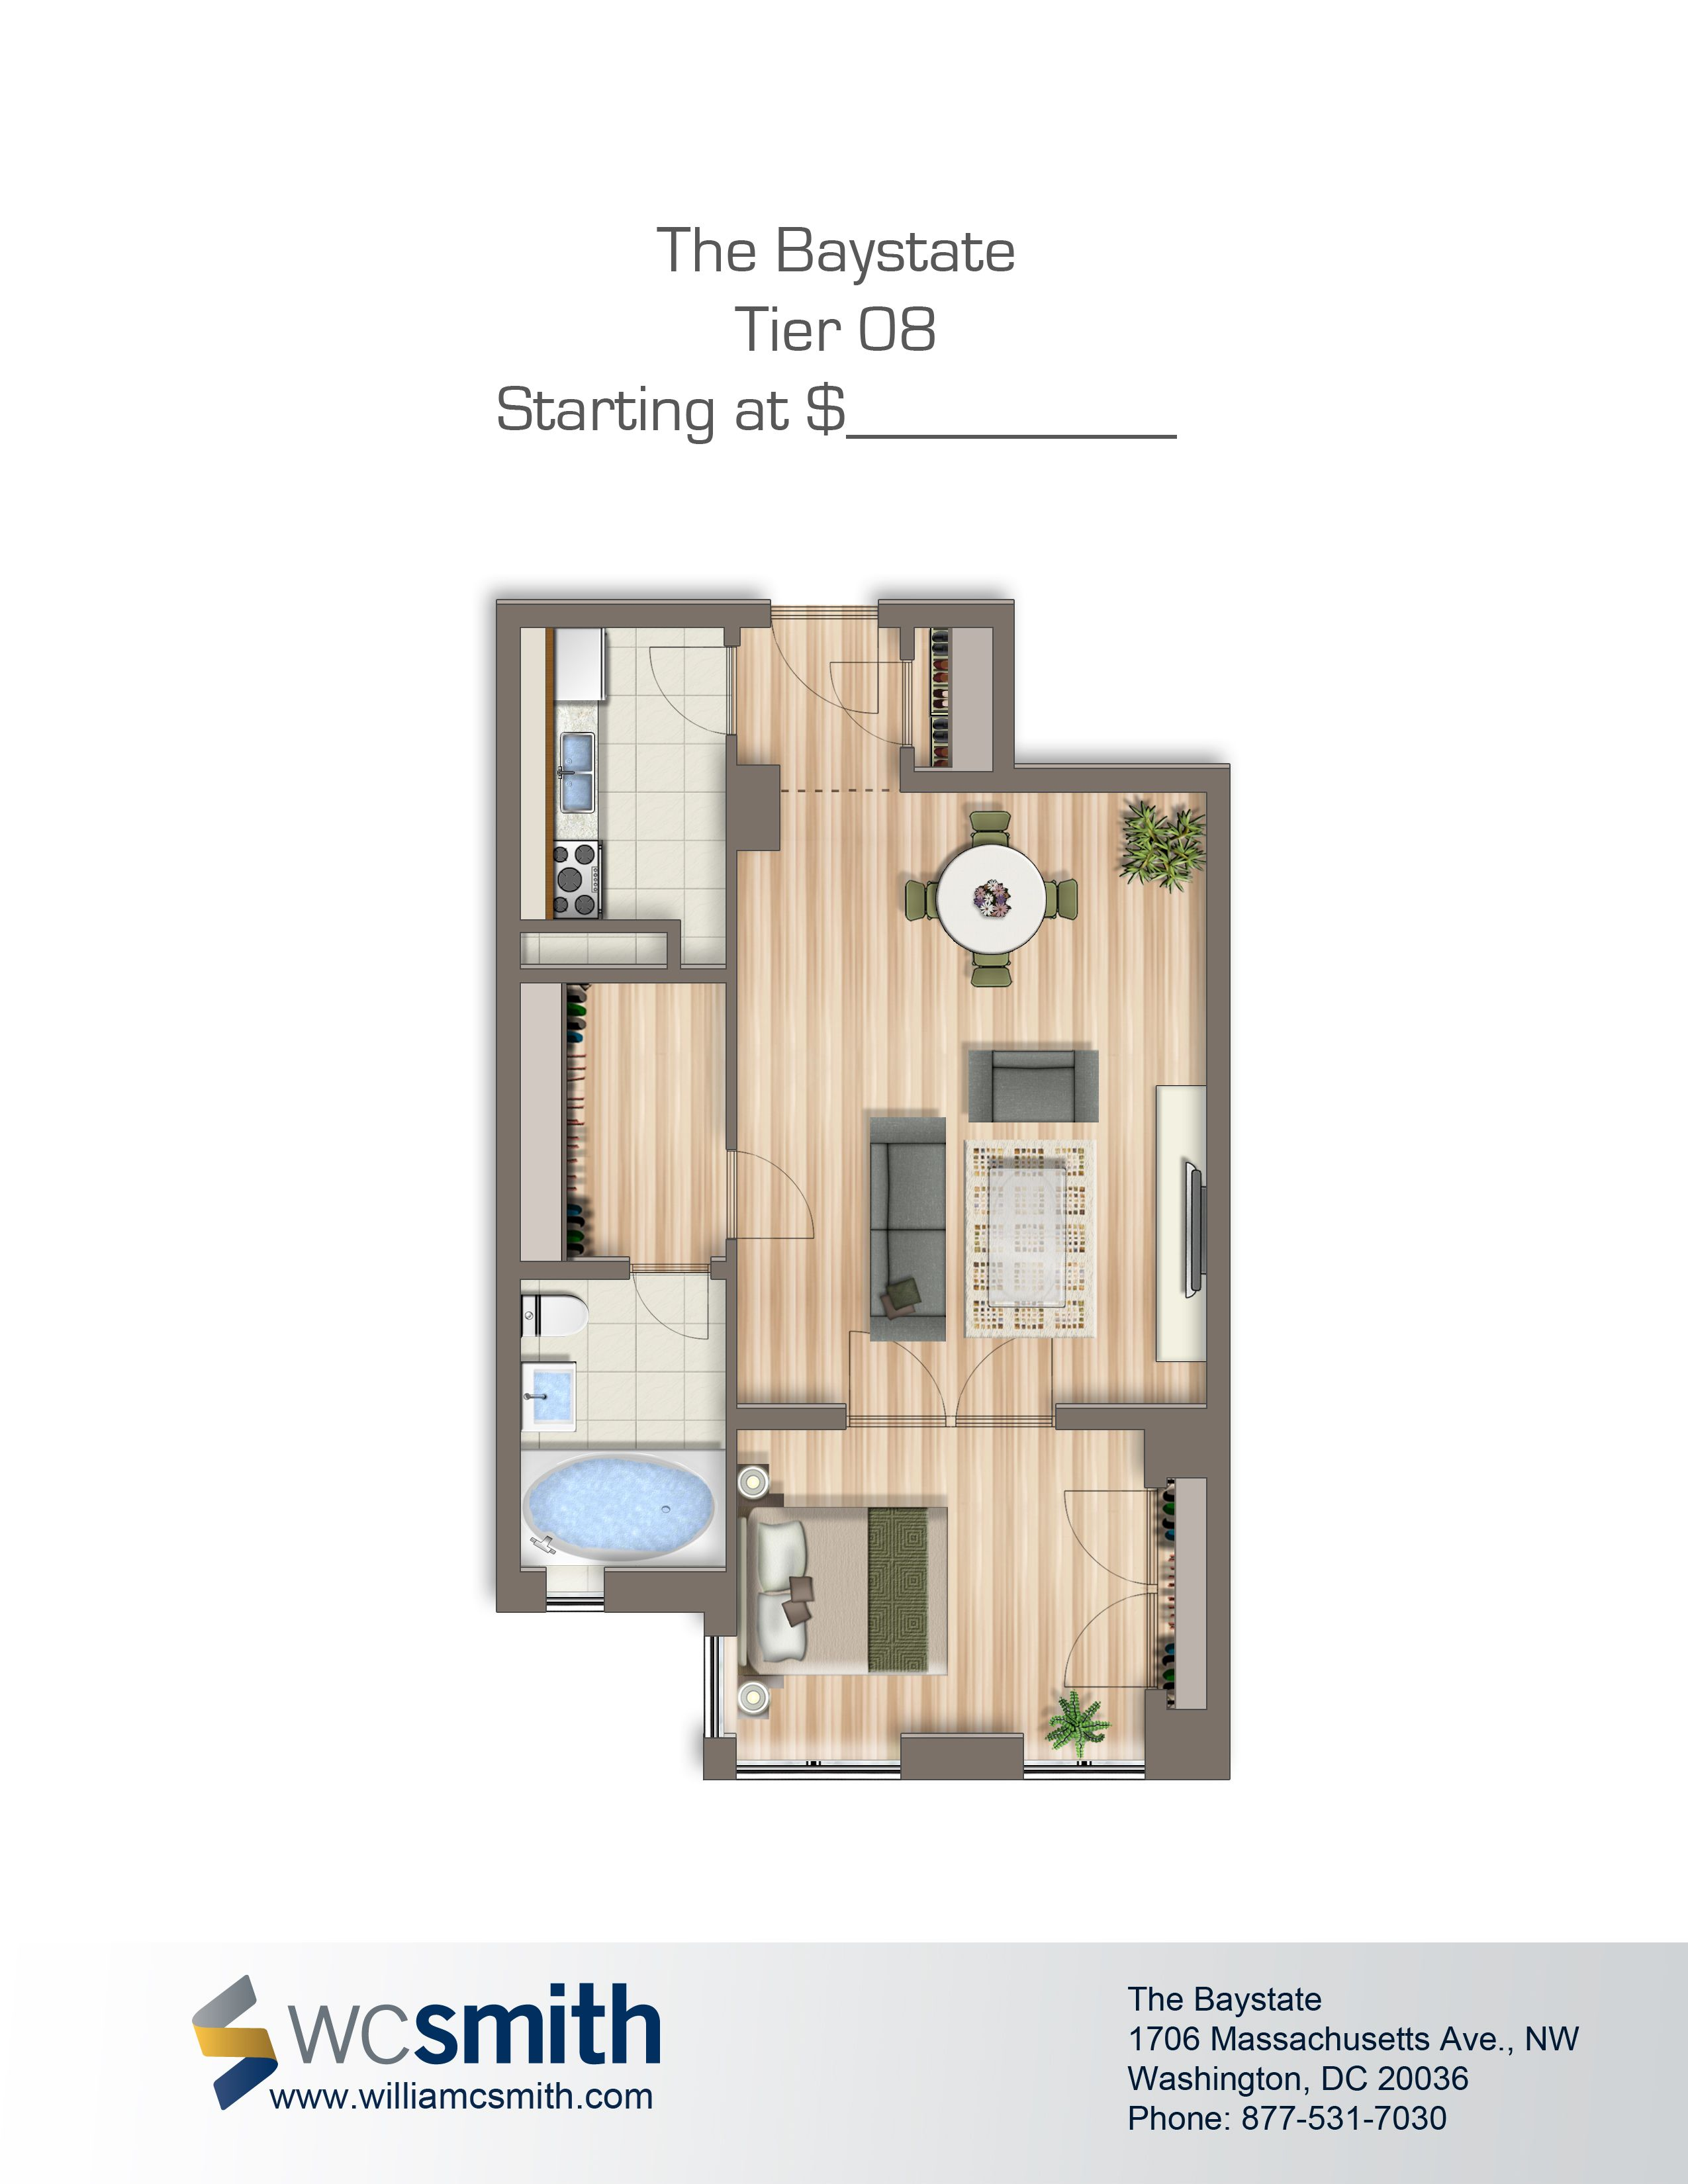 2 Bedroom Apartments For Rent In Dc Alluring Baystate Apartments  Washington Dc Apartments And Bedrooms Design Inspiration